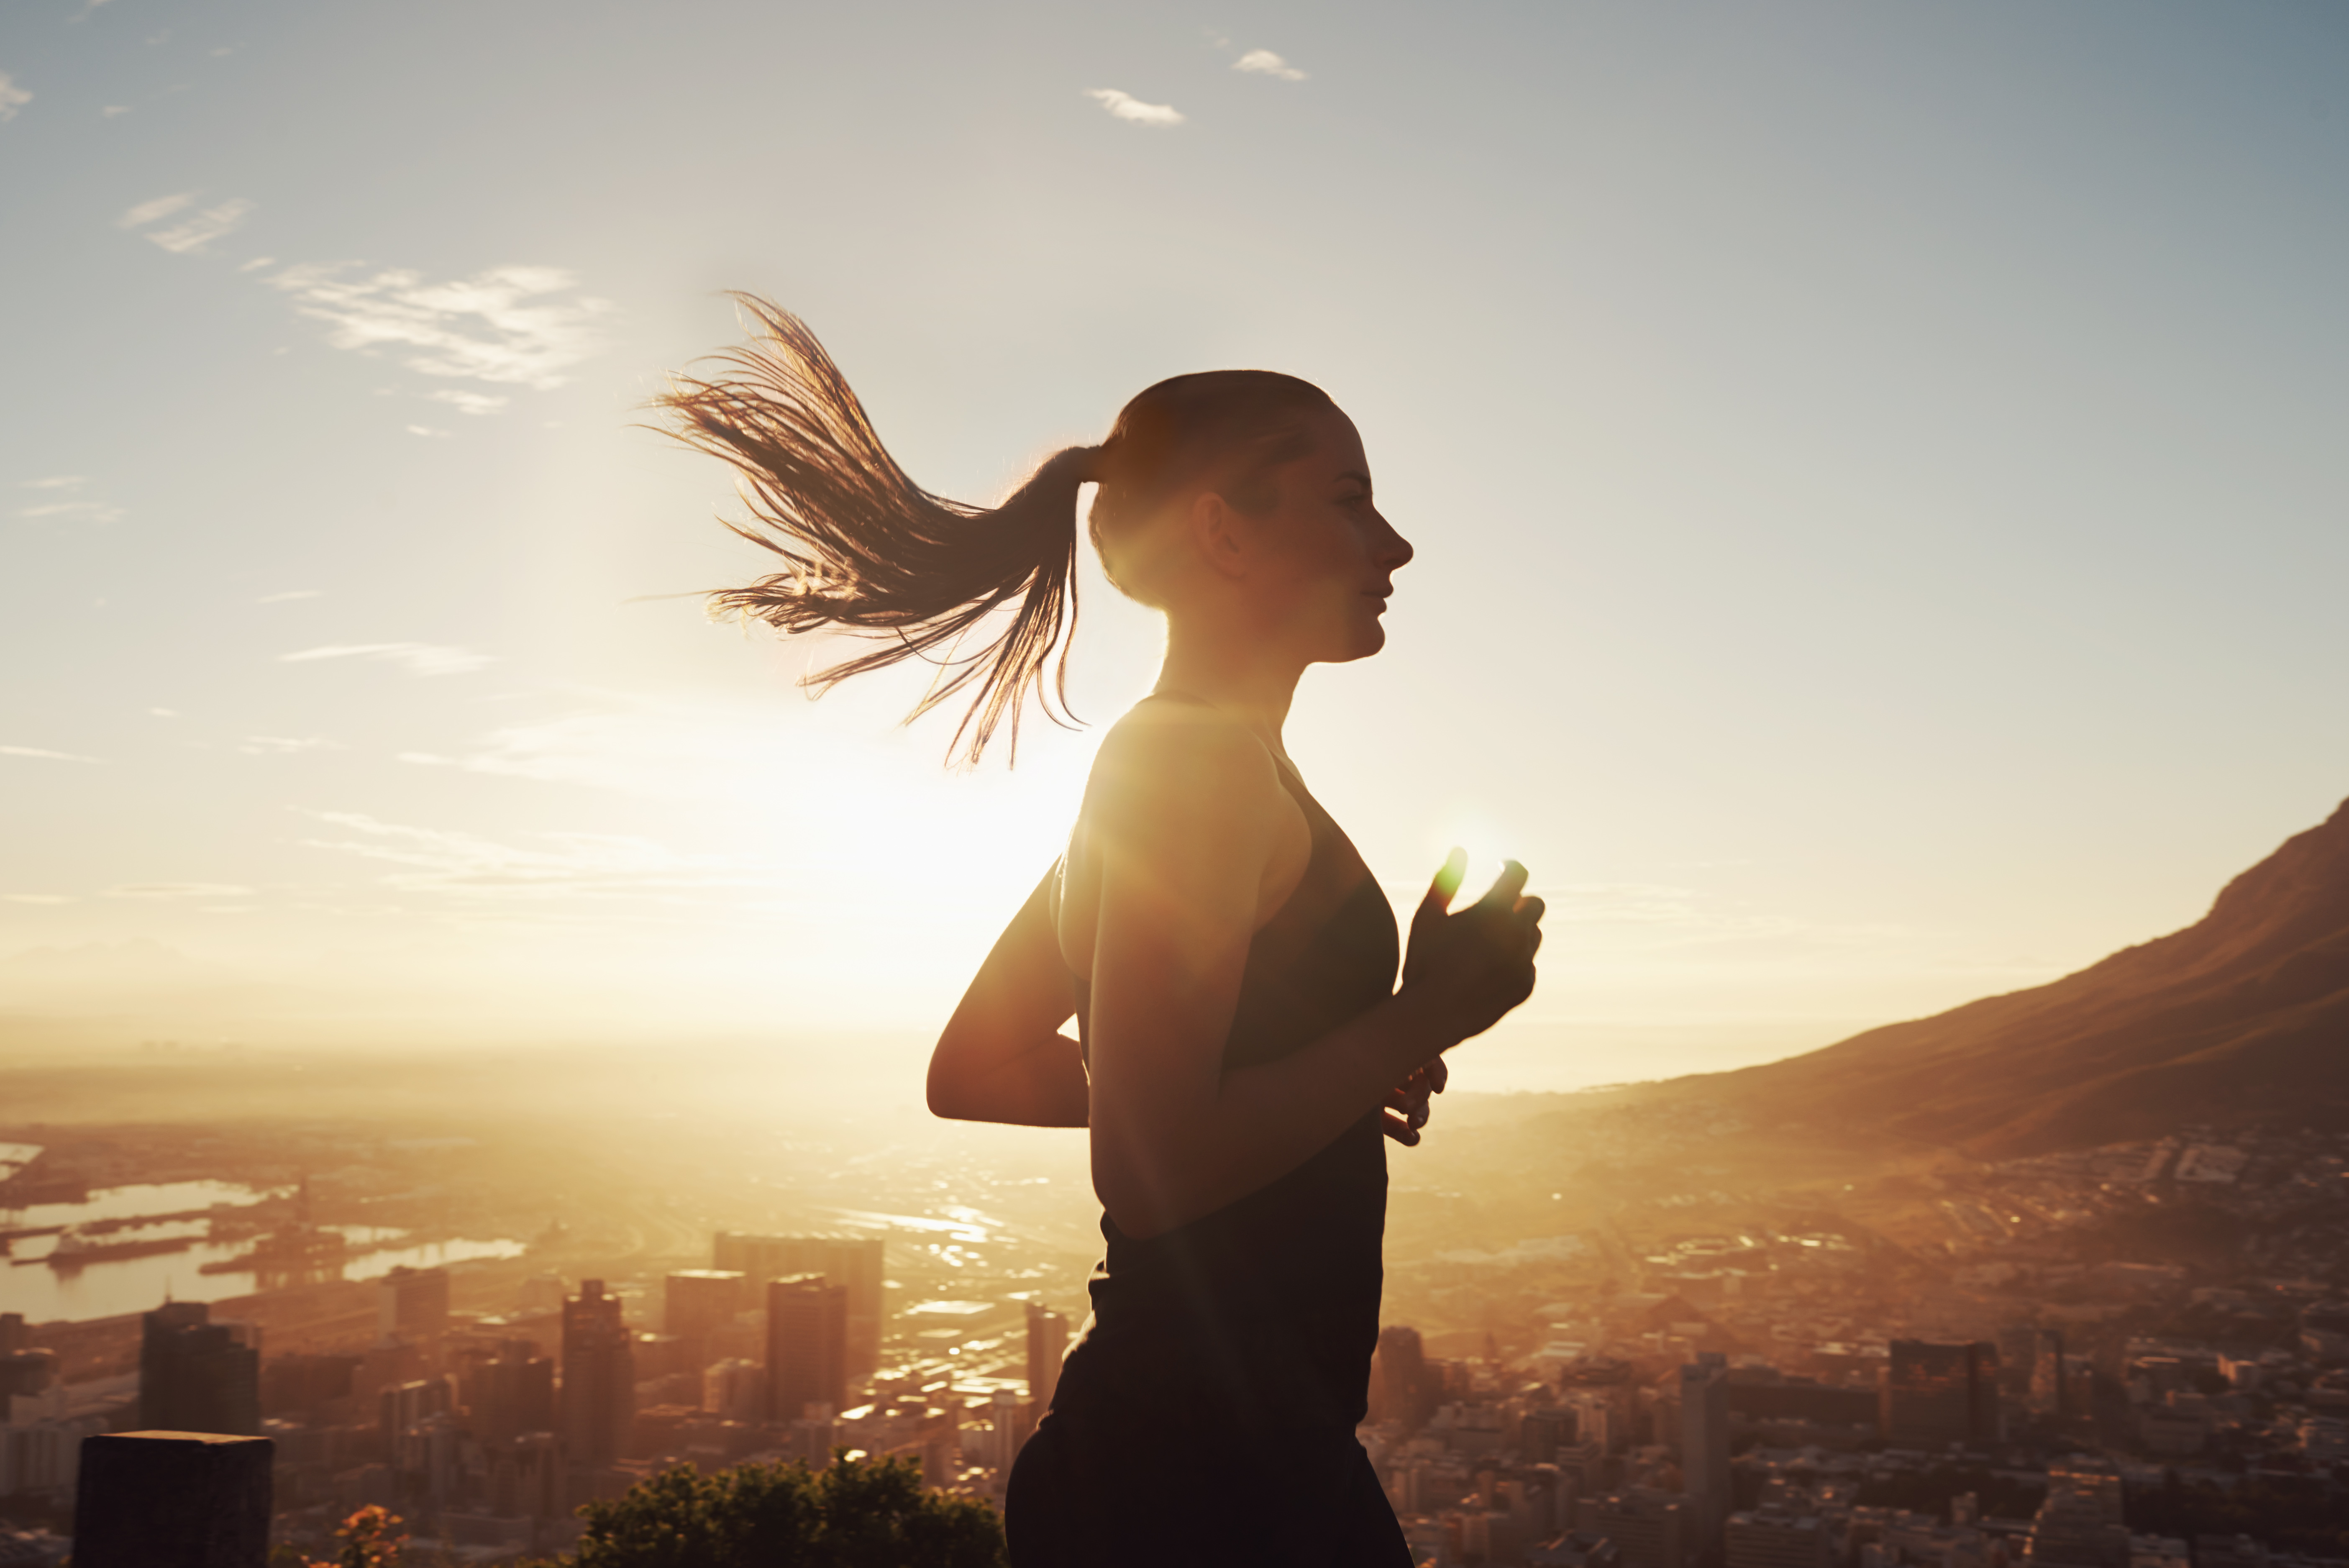 Shot of a beautiful young woman training at sunrisehttp://195.154.178.81/DATA/i_collage/pi/shoots/783460.jpg